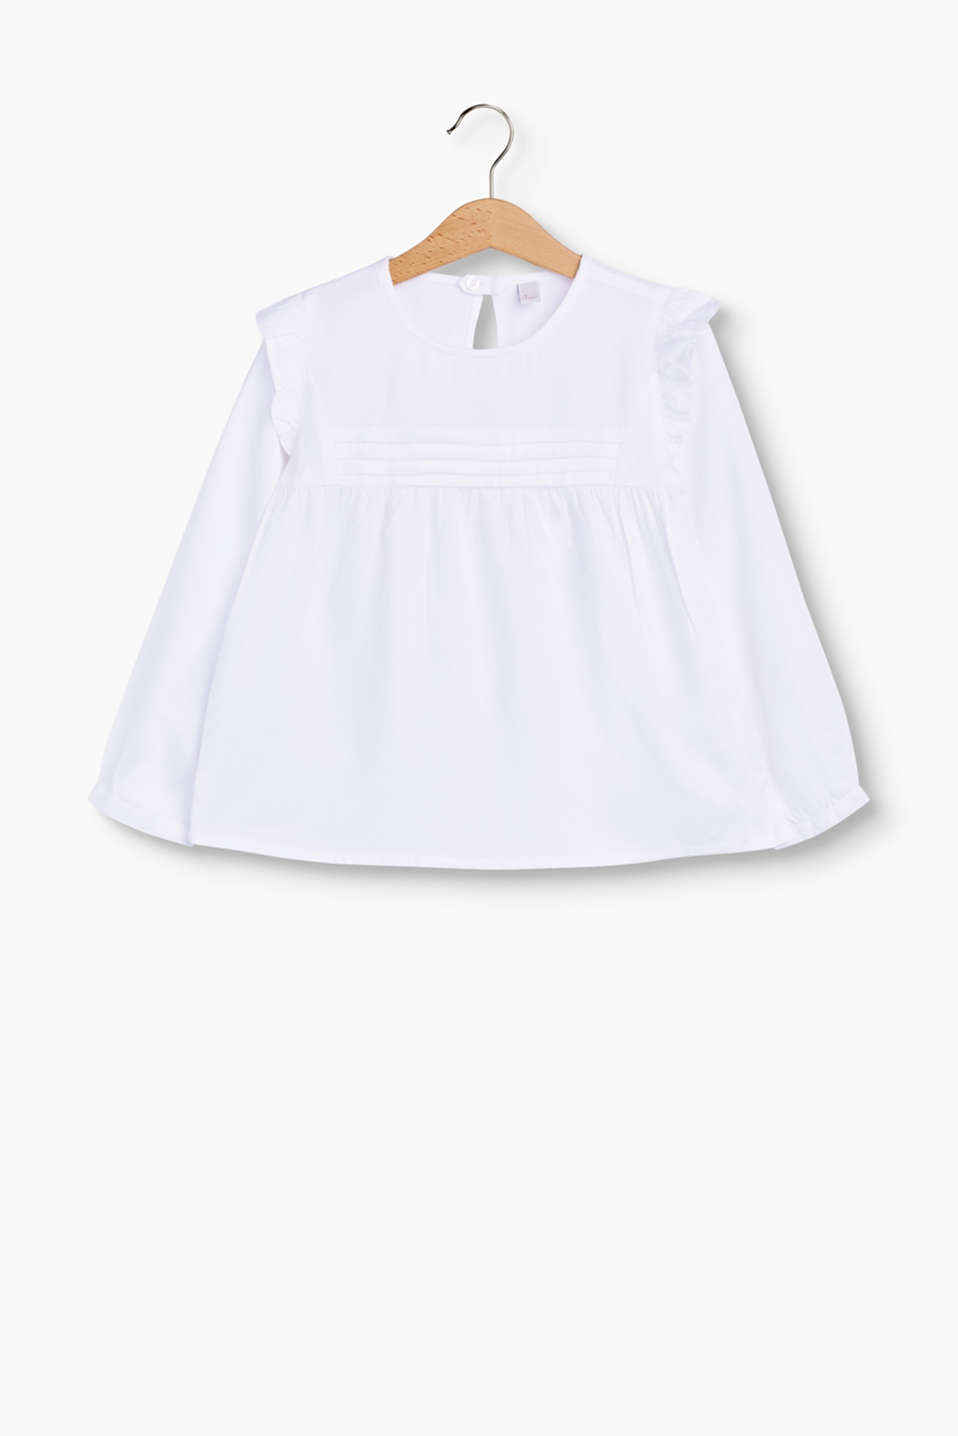 Looking good! A-line blouse embellished with pintucks and pretty frills, made of softly draped material.